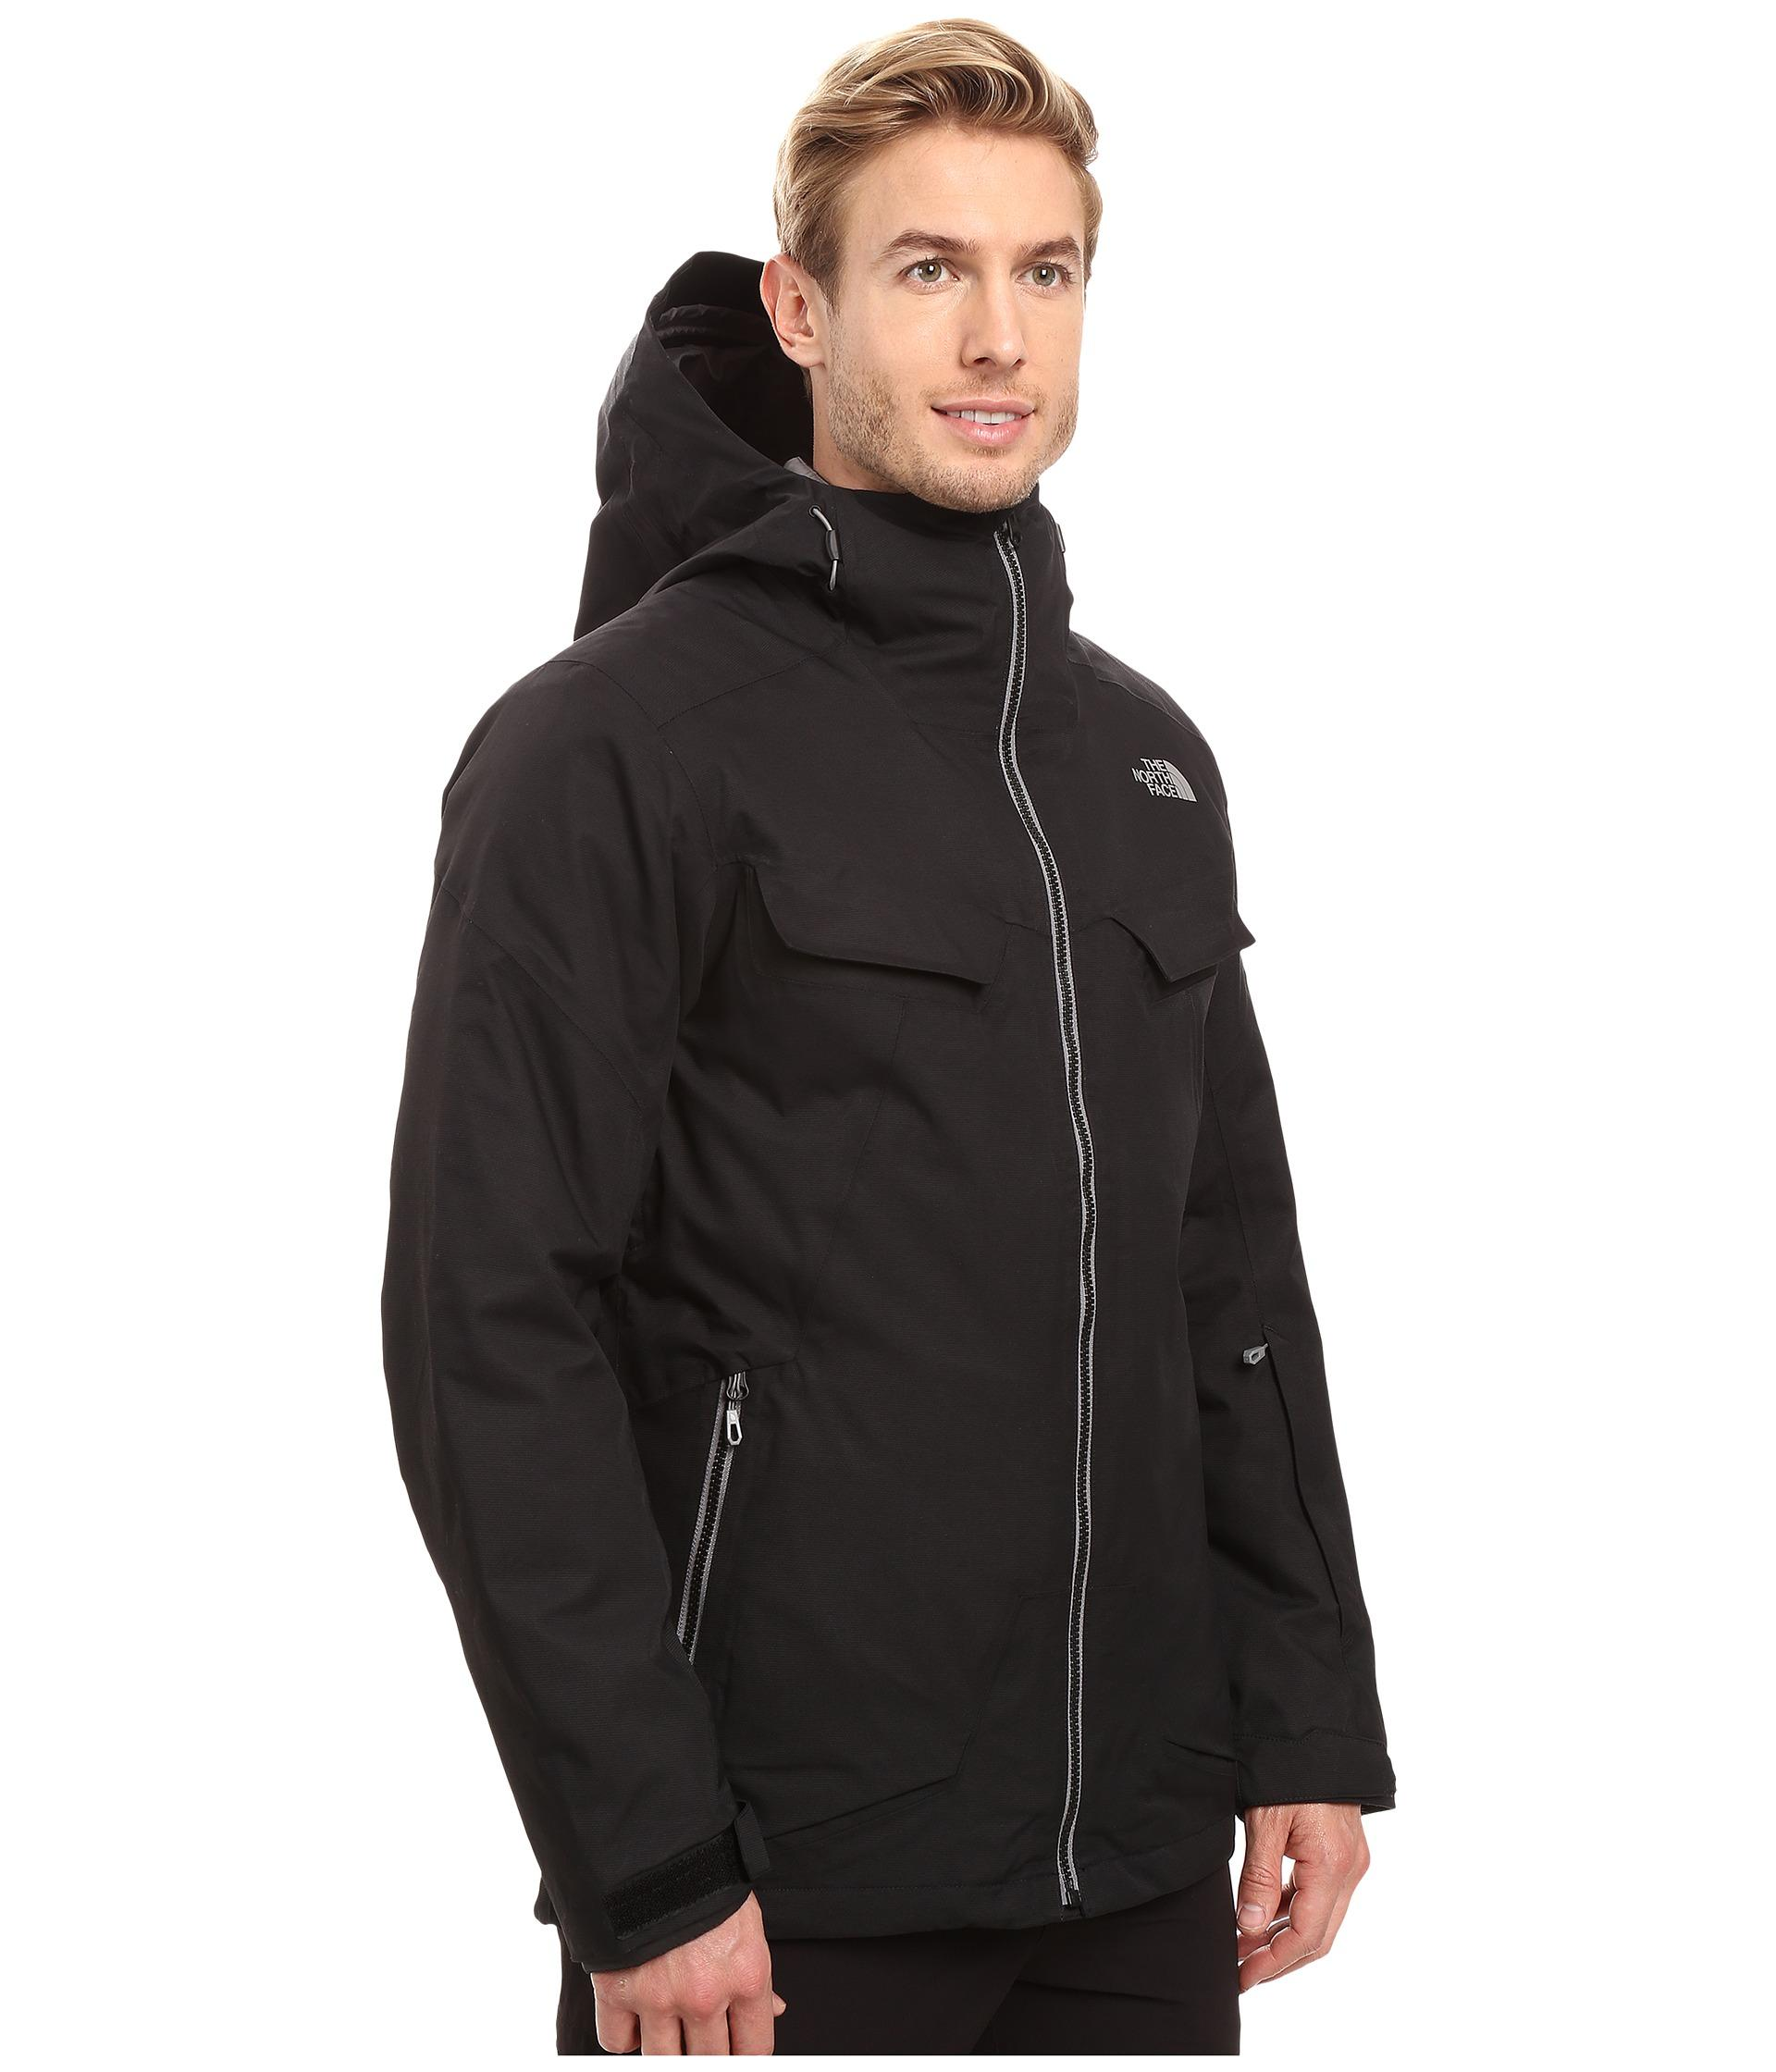 db504217488 The North Face - Black Initiator Thermoball Triclimate Jacket for Men - Lyst